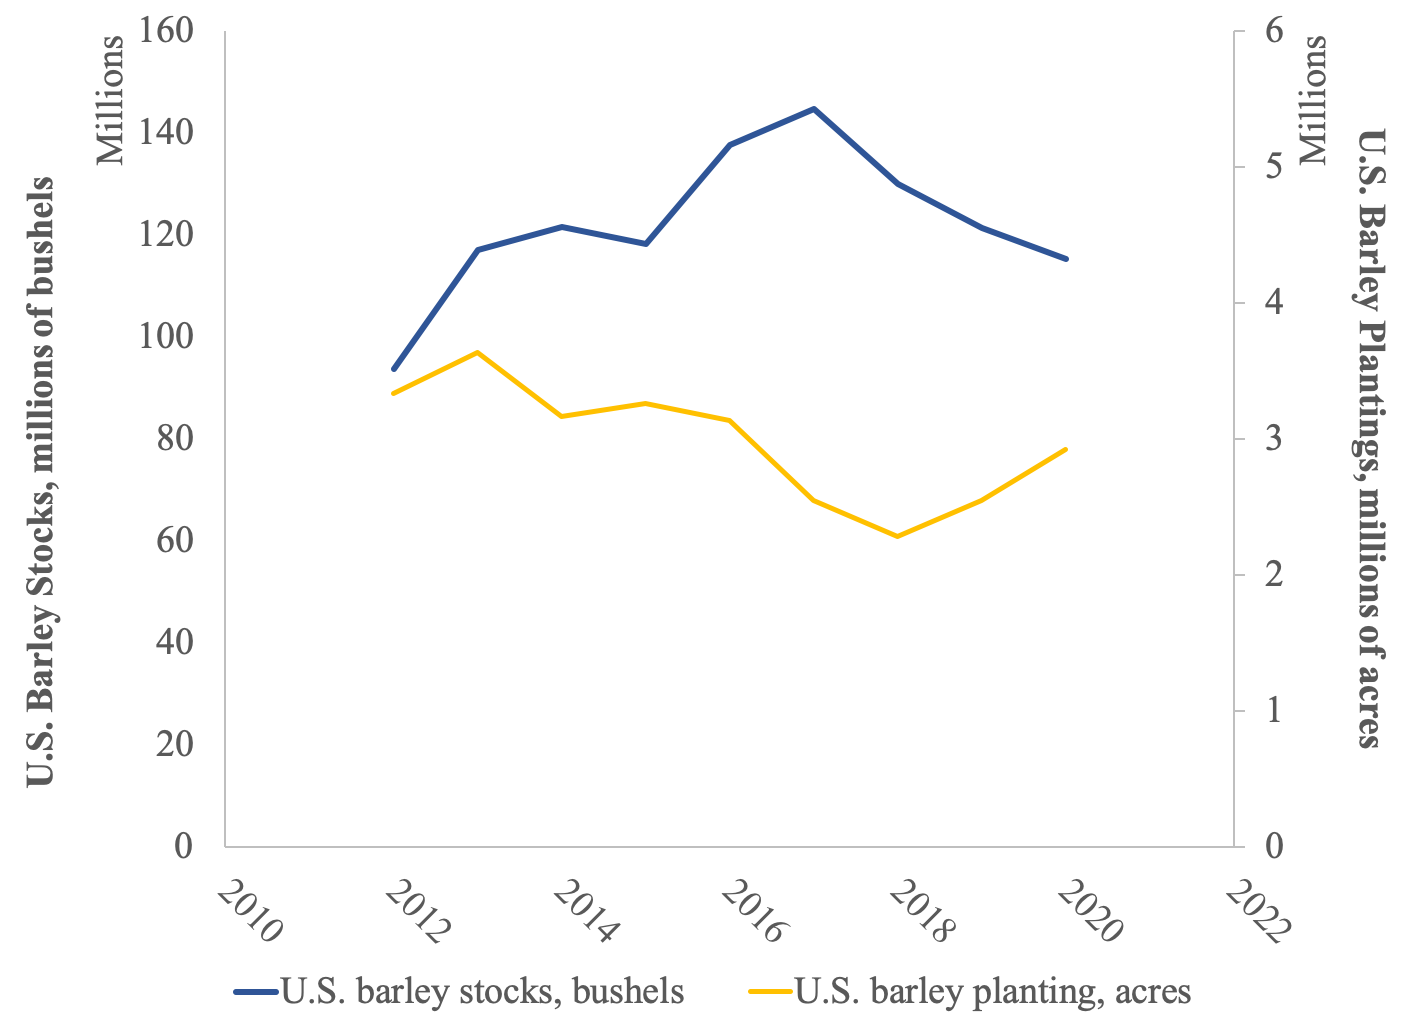 Barley plantings and stocks